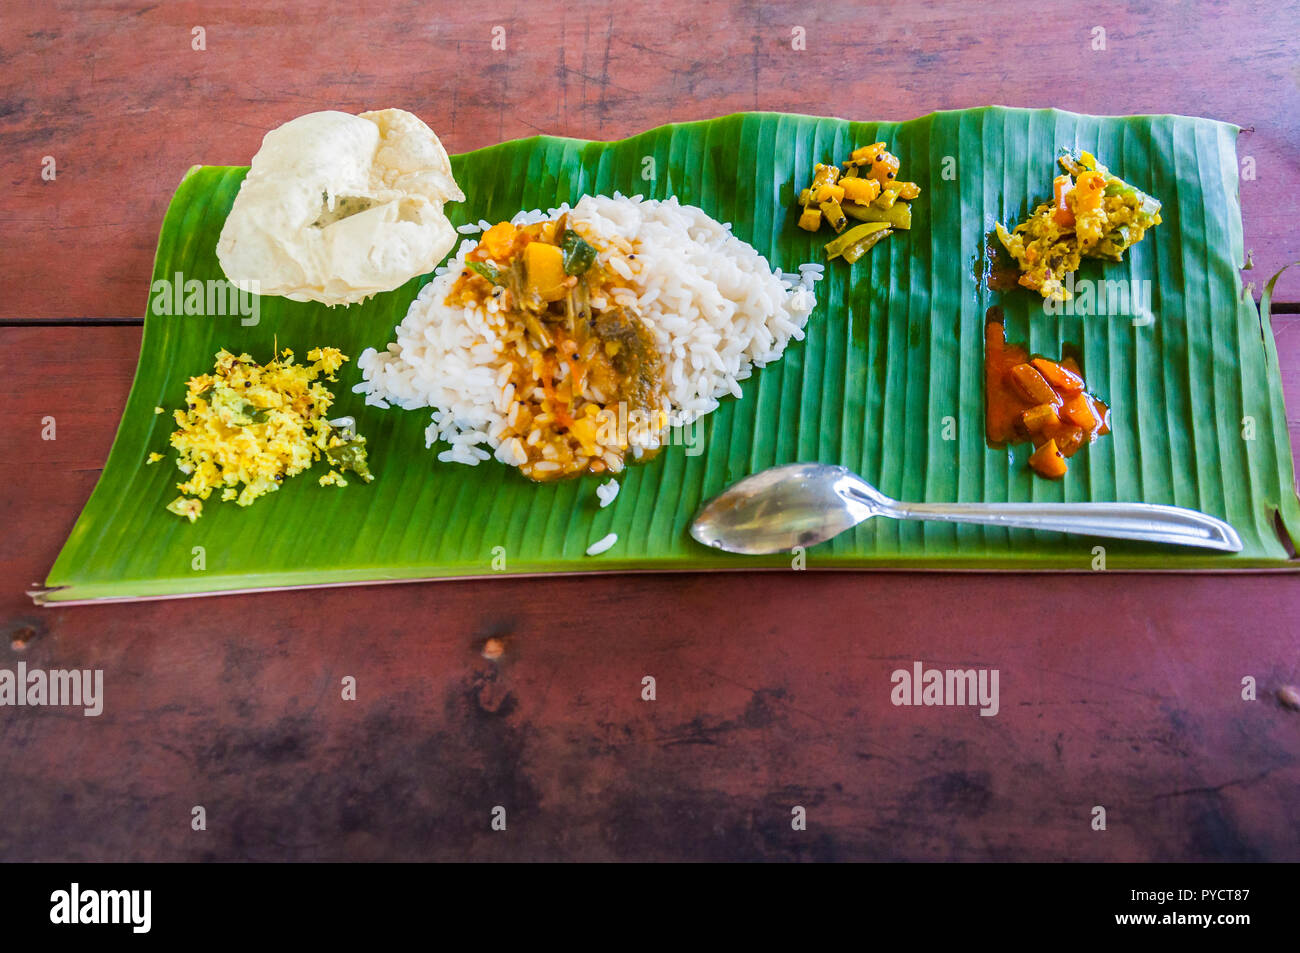 Kerala Is Known For Its Traditional Banquet Or Sadya A Pure Vegetarian Meal Served With Boiled Rice And A Host Of Side Dishes Served Especially Durin Stock Photo Alamy